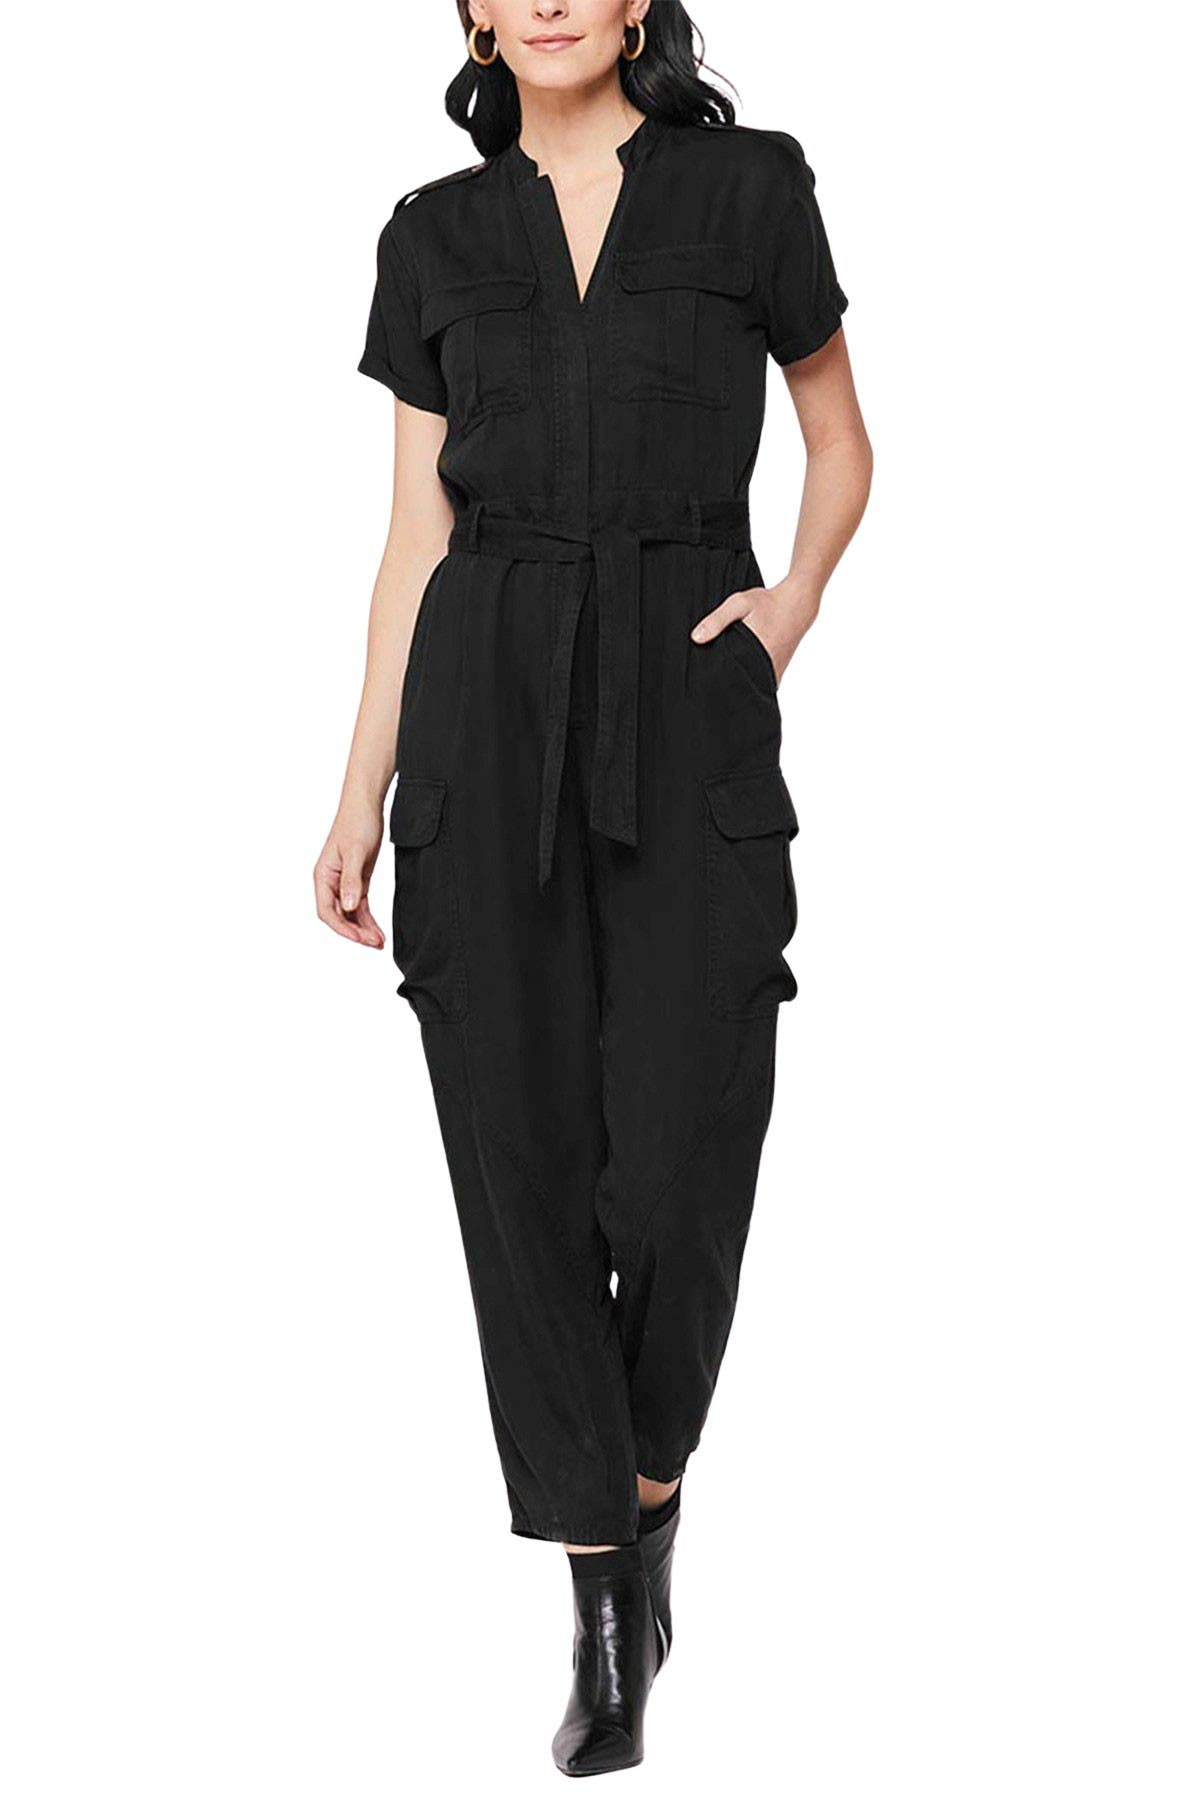 Image of Velvet Heart Greyson Short Sleeve Jumpsuit